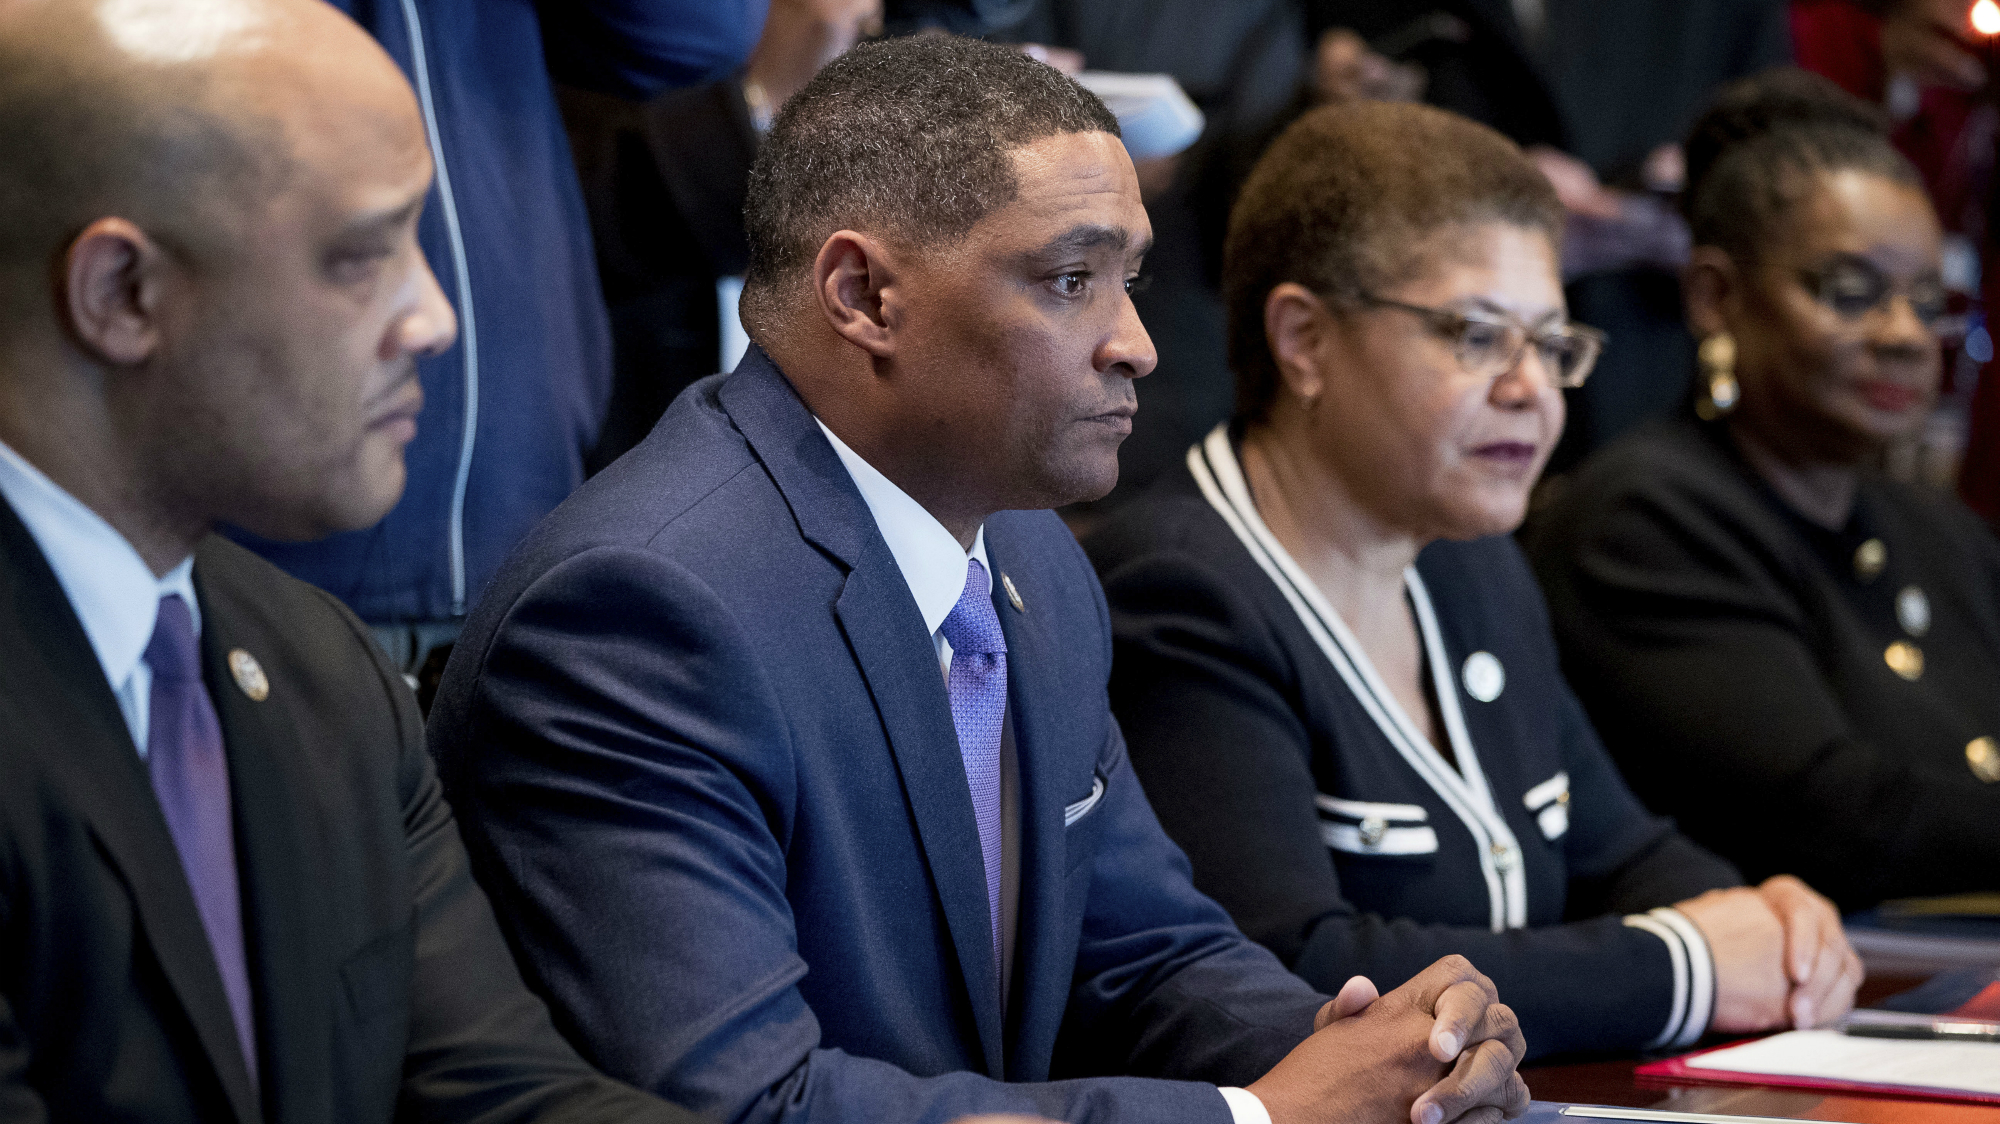 Congressional Black Caucus Shows Trump Its Policy Vision for Black America